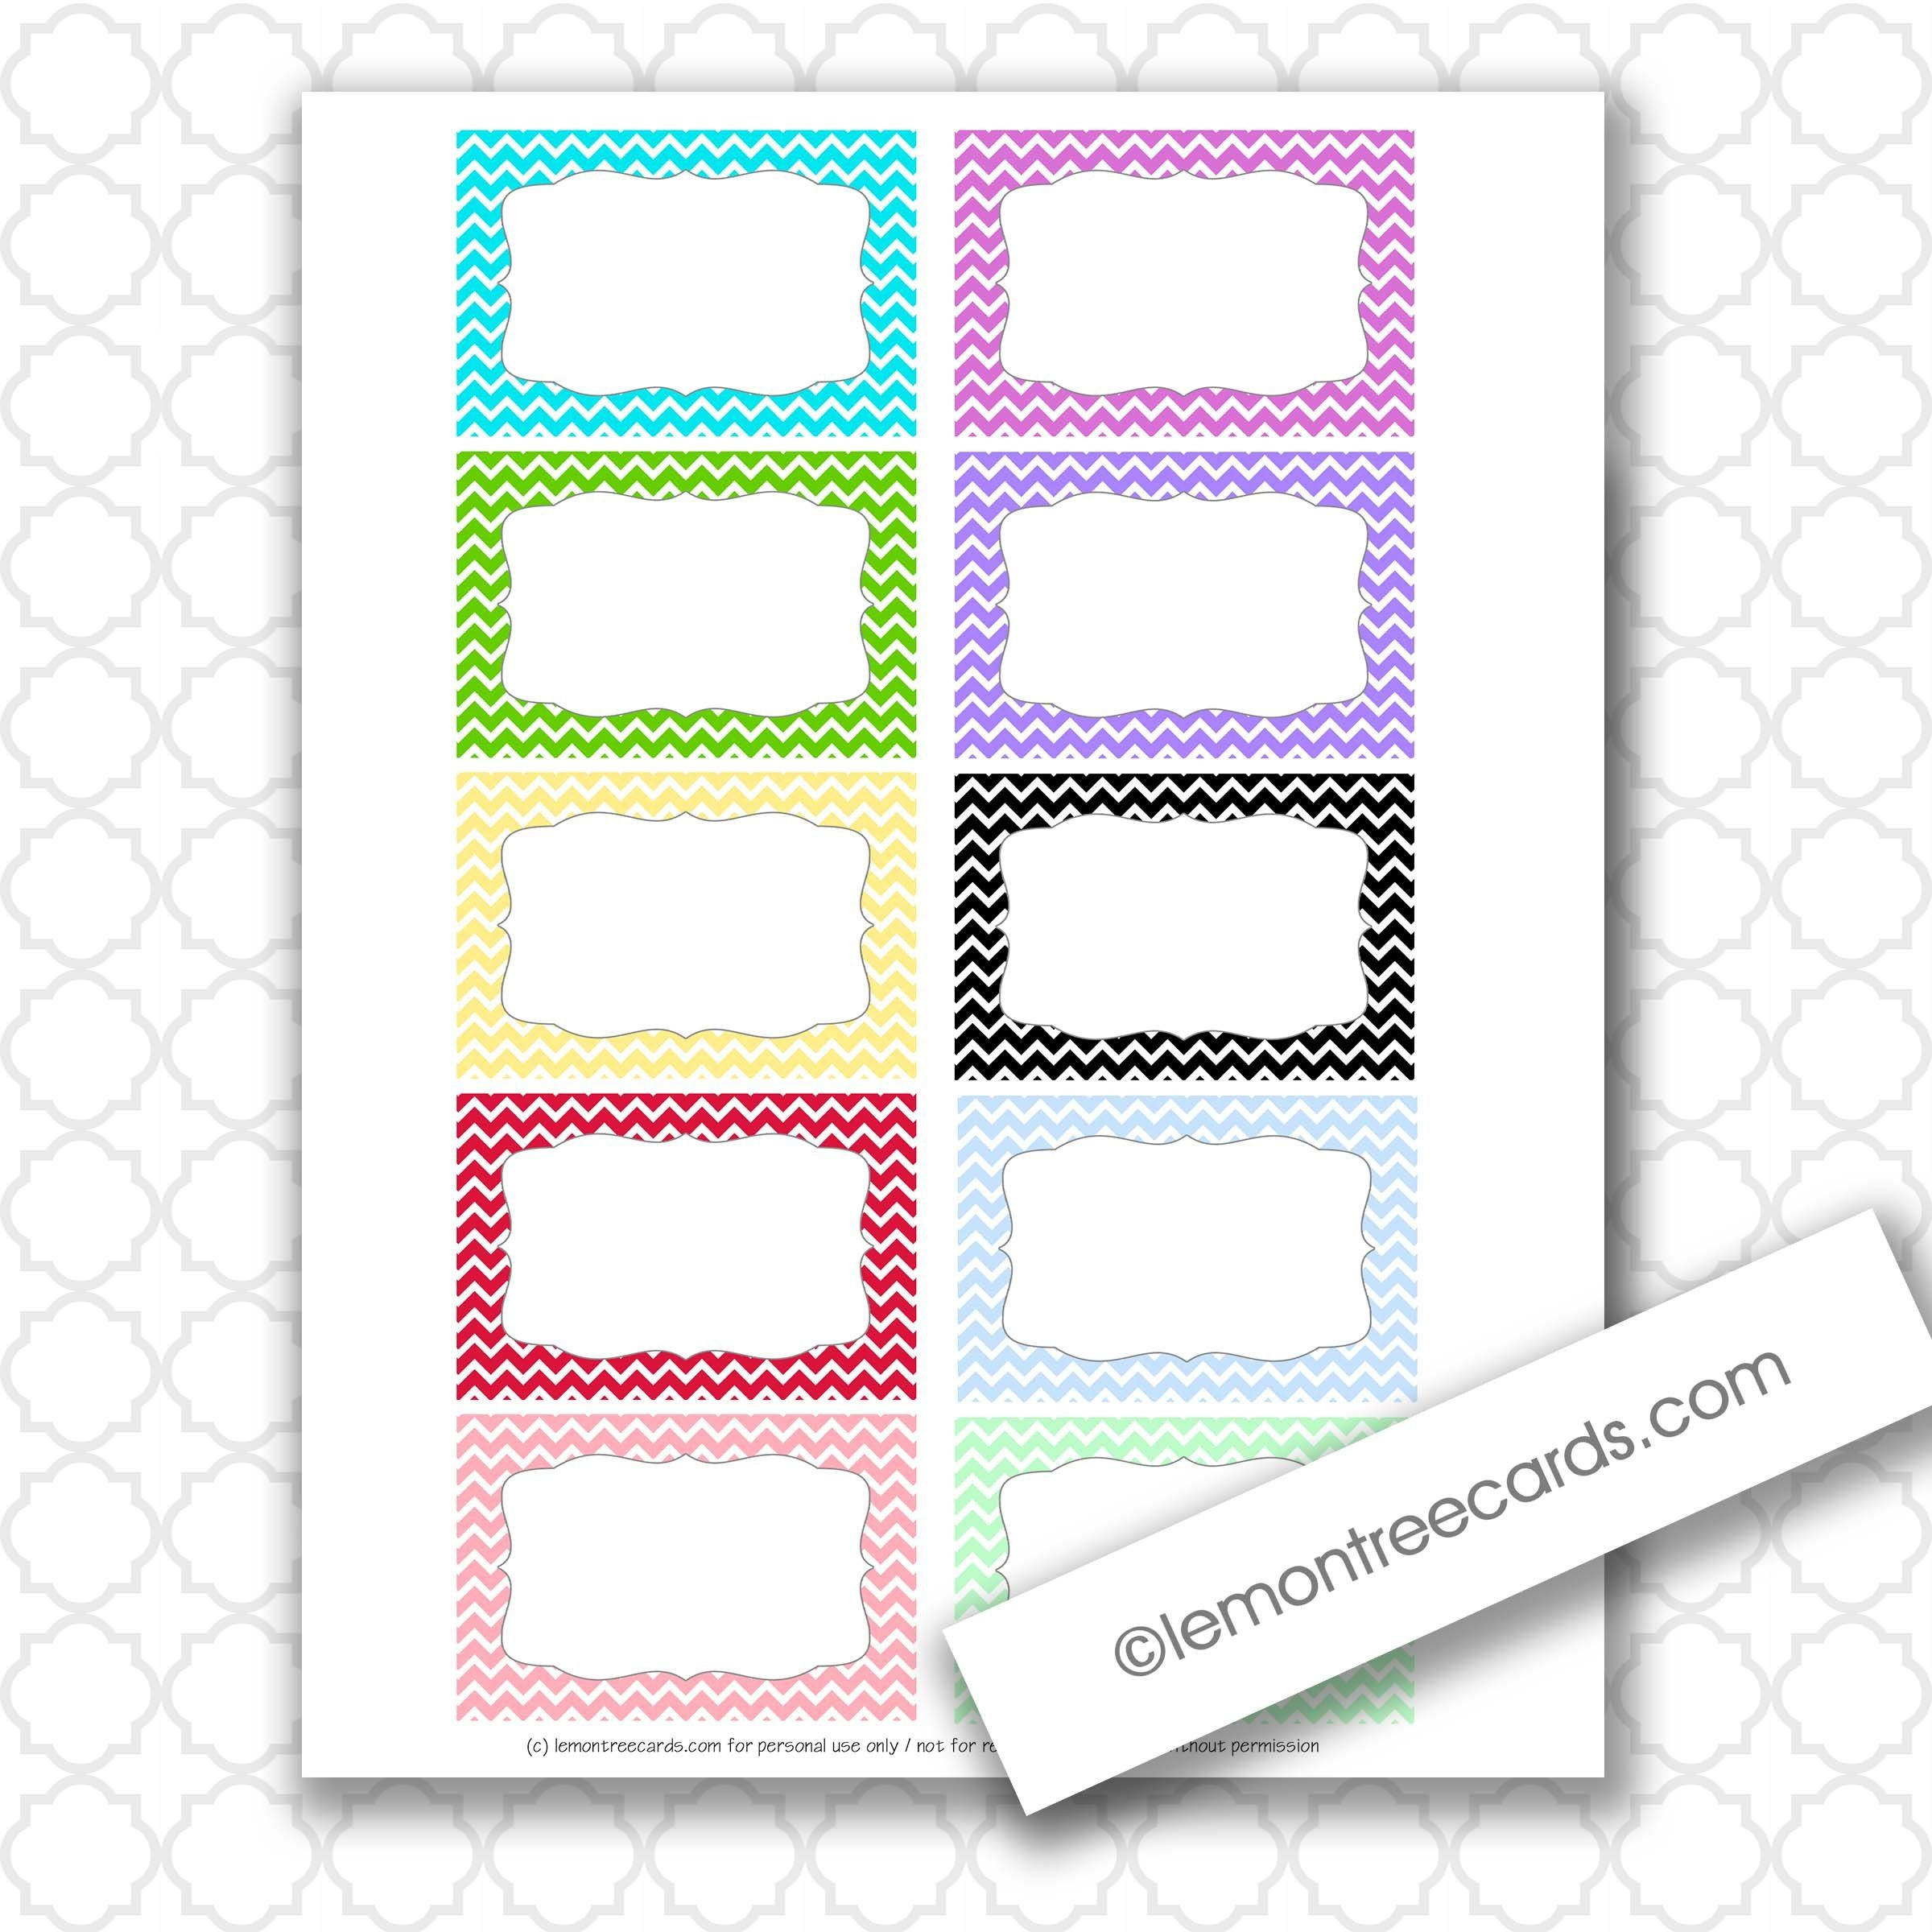 Printable Index Card Templates 3x5 And 4x6 Blank Pdfs With